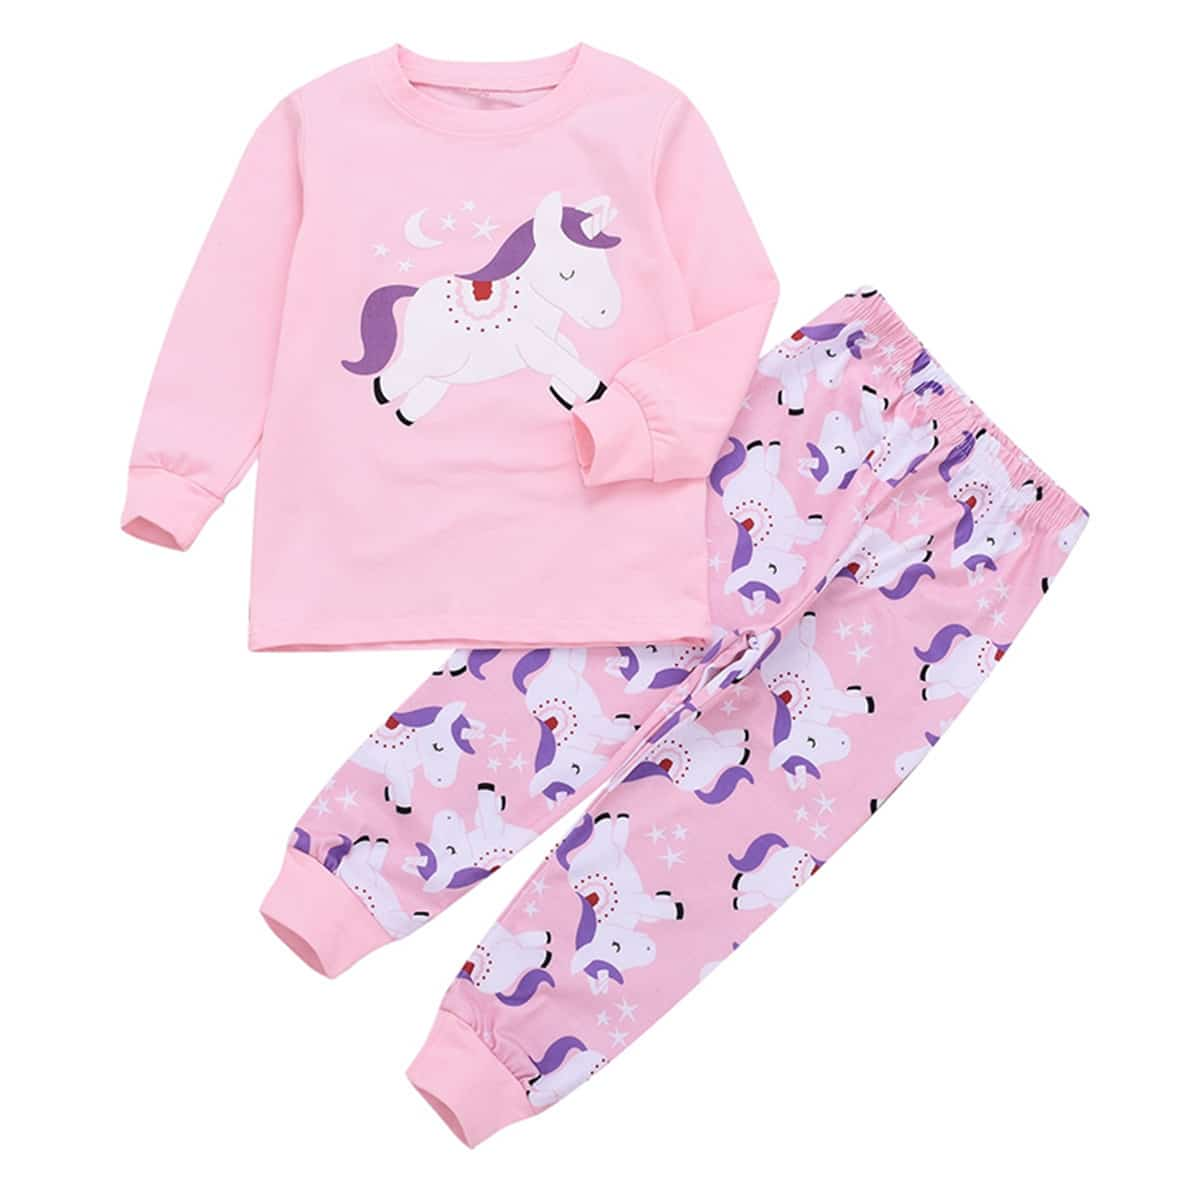 SHEIN coupon: Toddler Girls Unicorn Graphic Tee With Pants